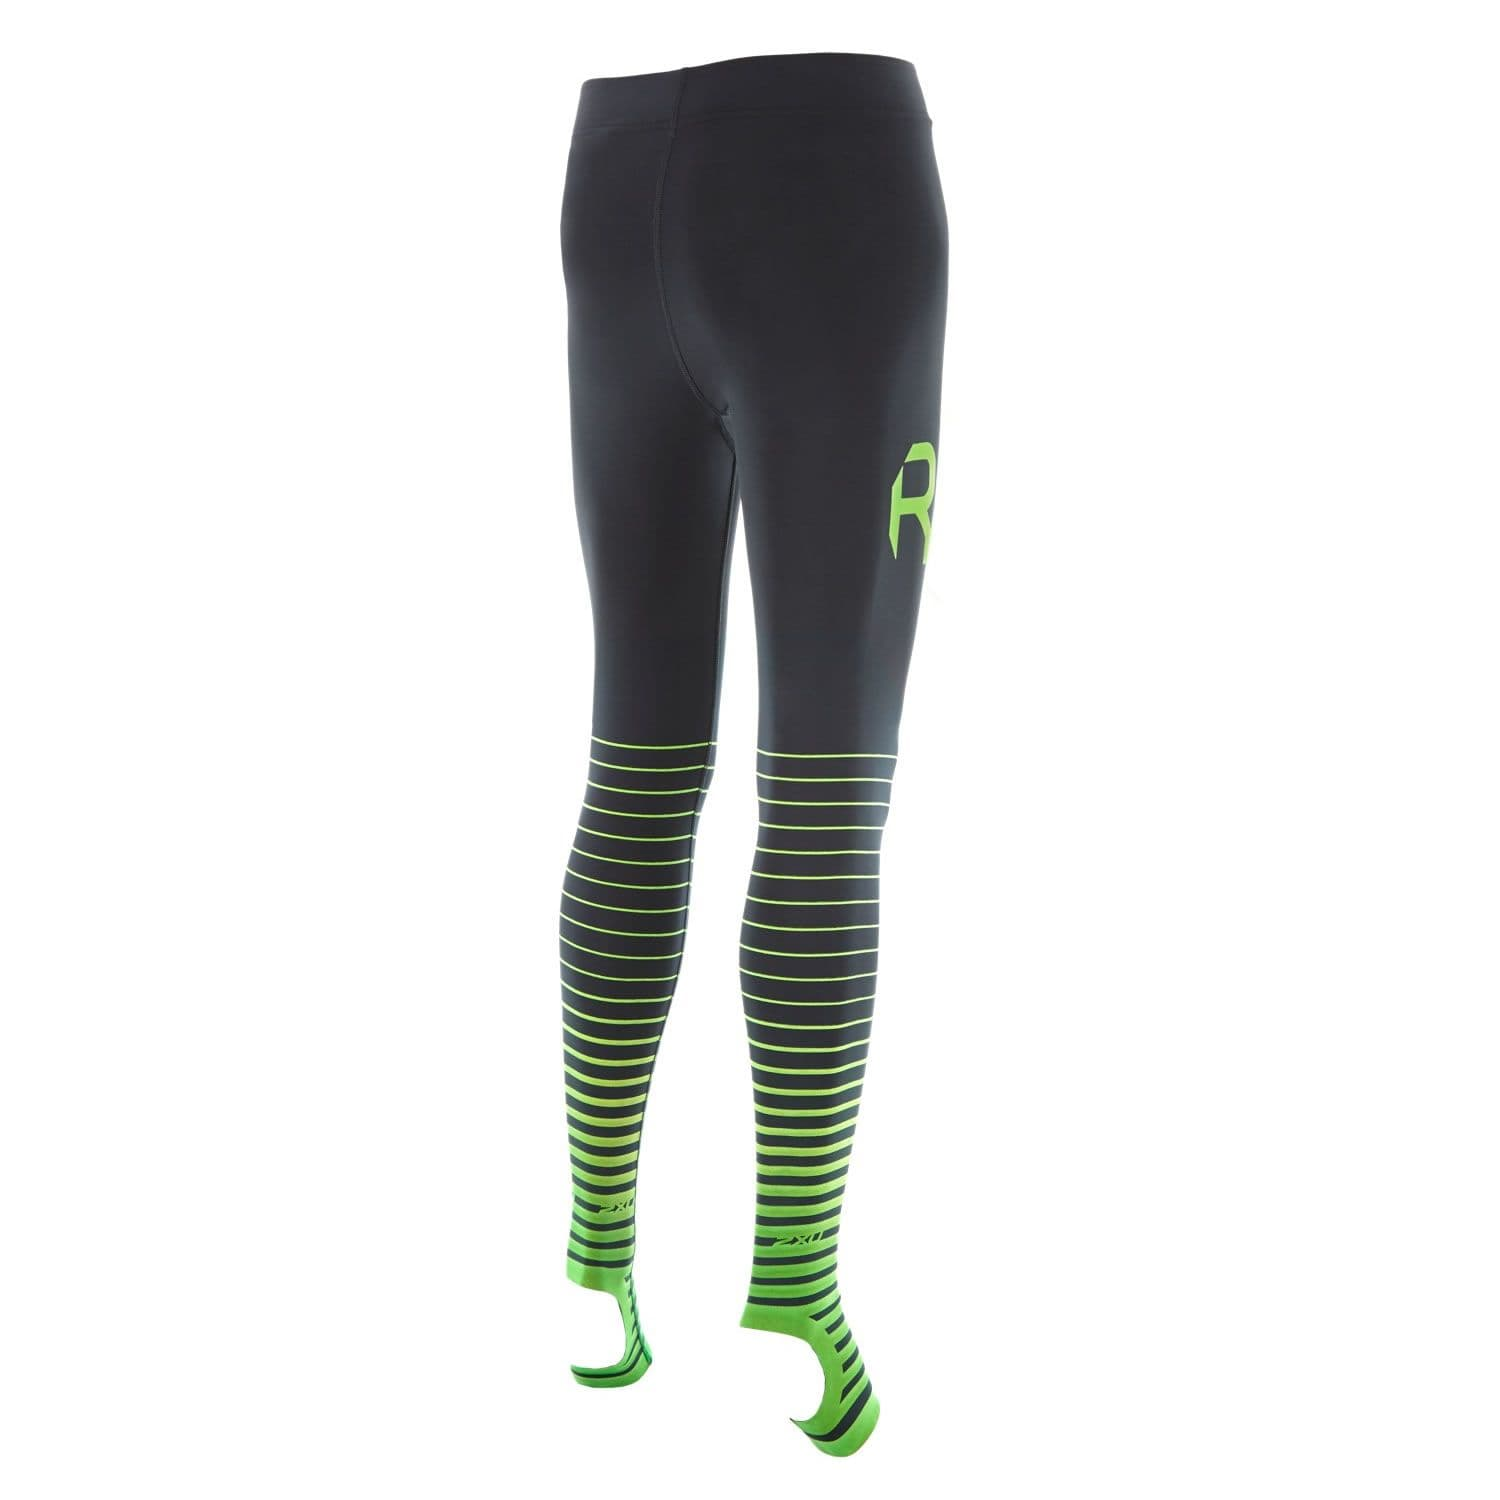 192c00fdea0ae4 Power Recharge Recovery Compression Tight Women - 2XU - black ...